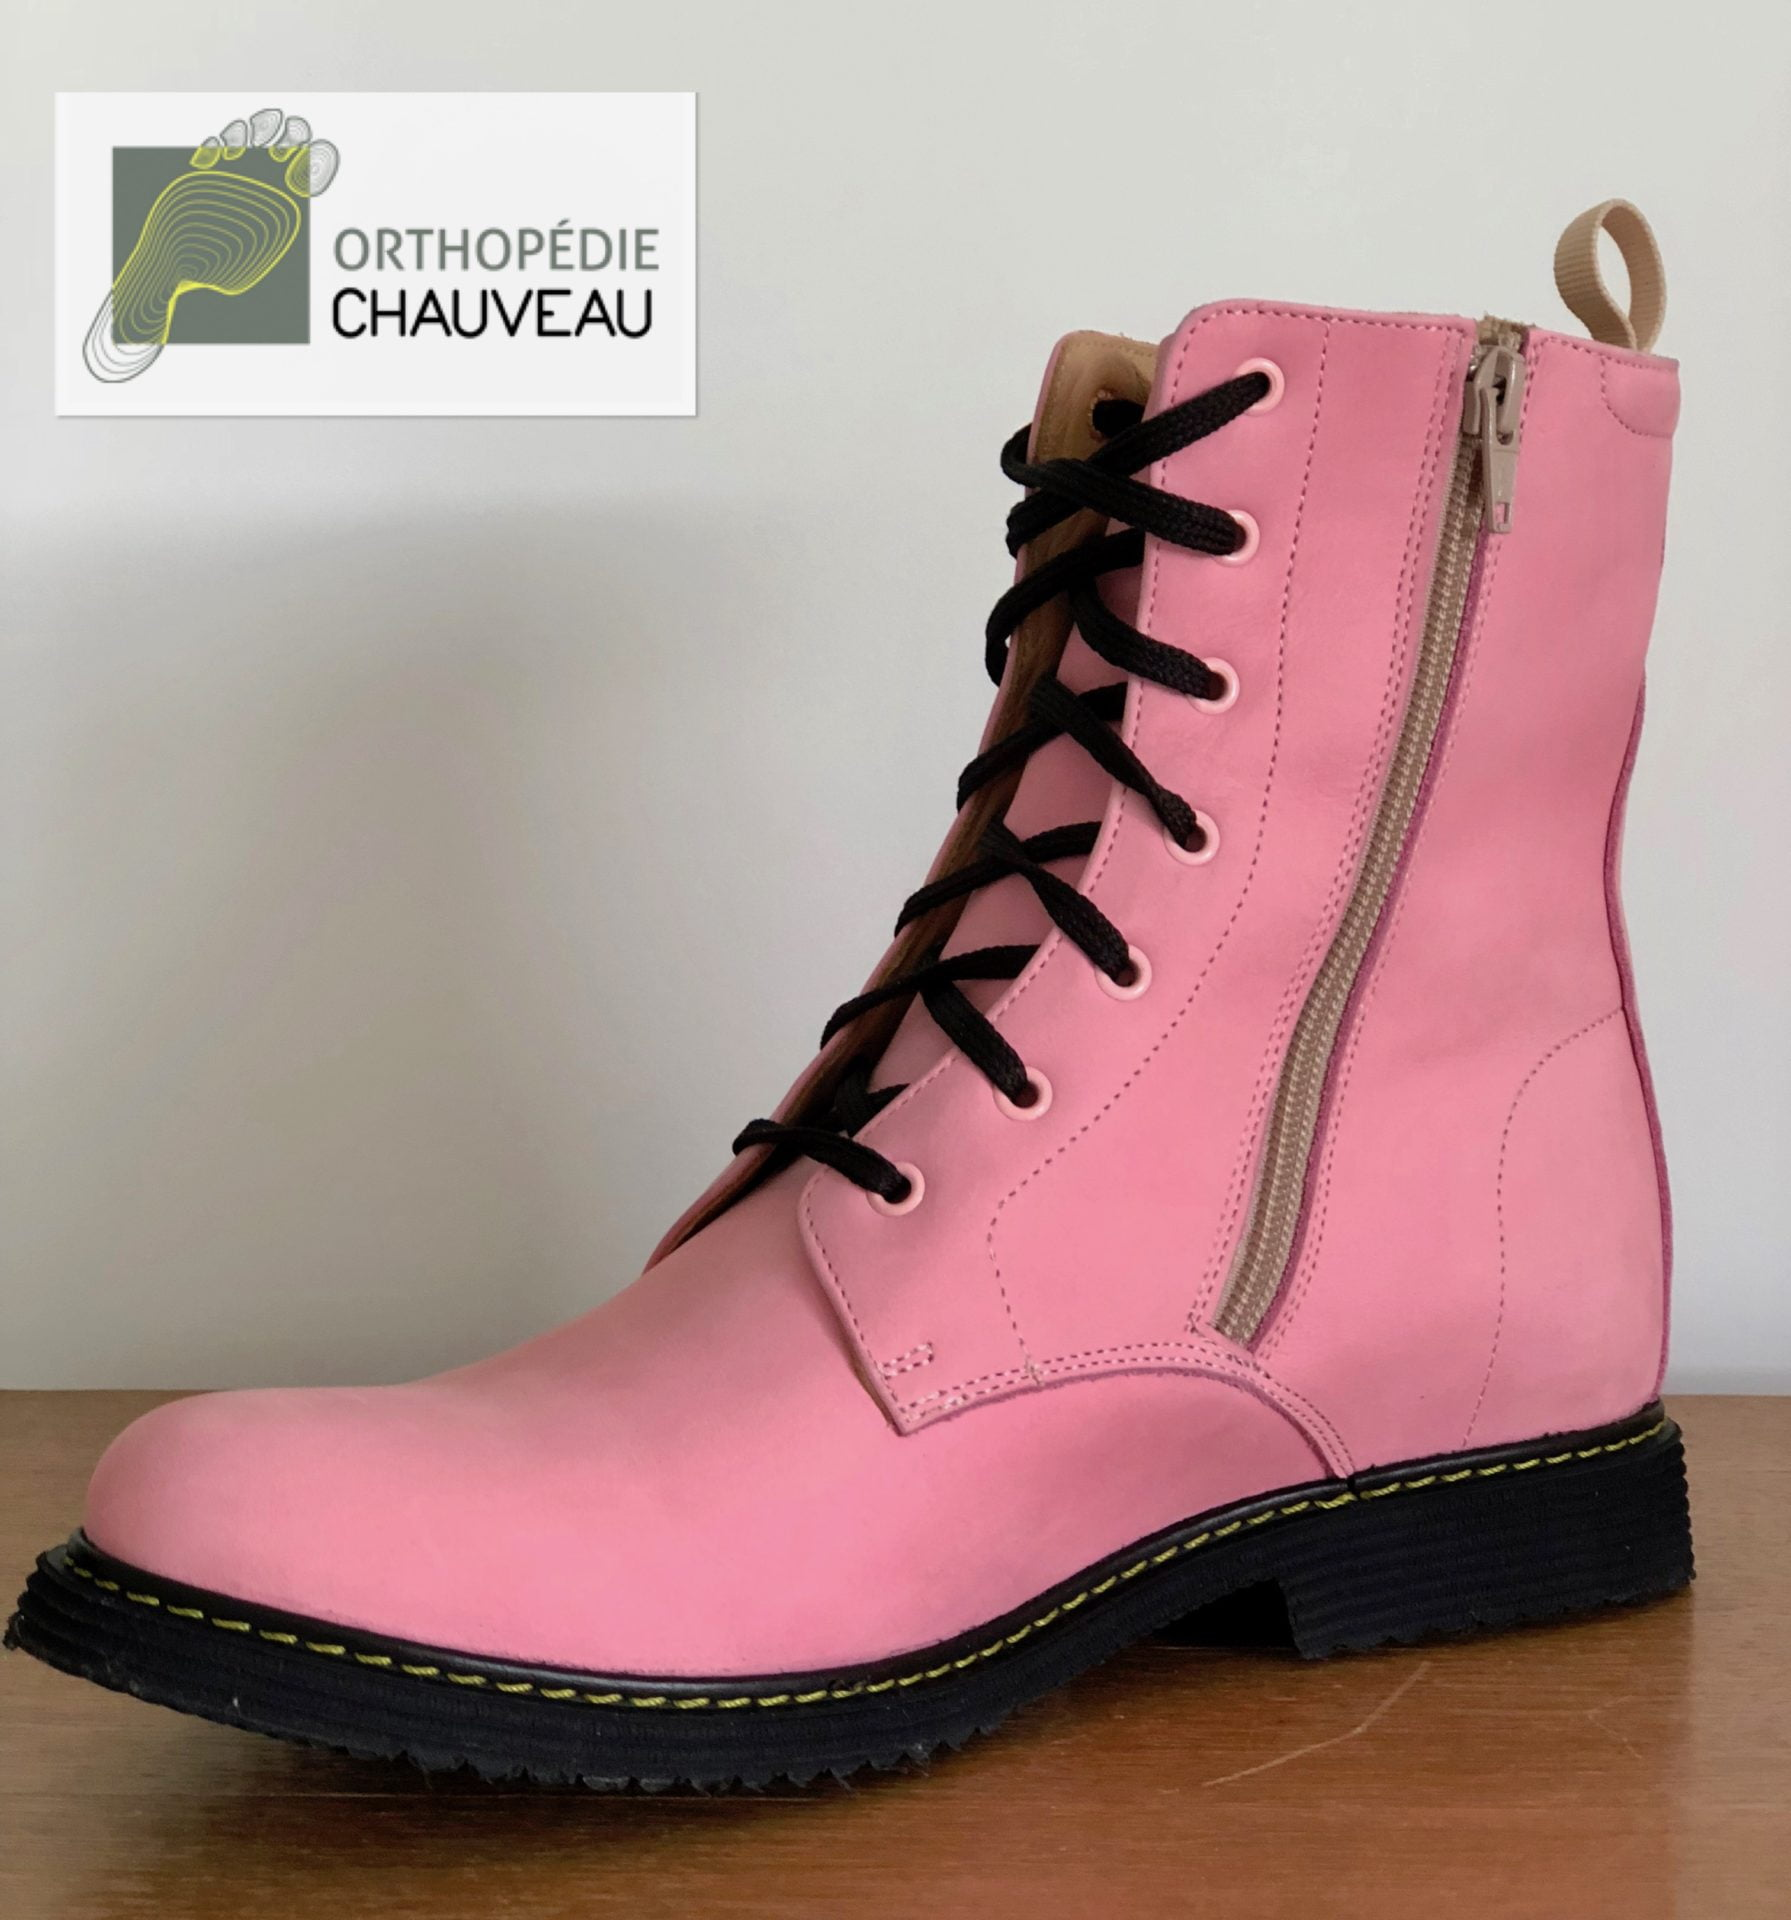 chaussures orthopediques Rennes doc martins